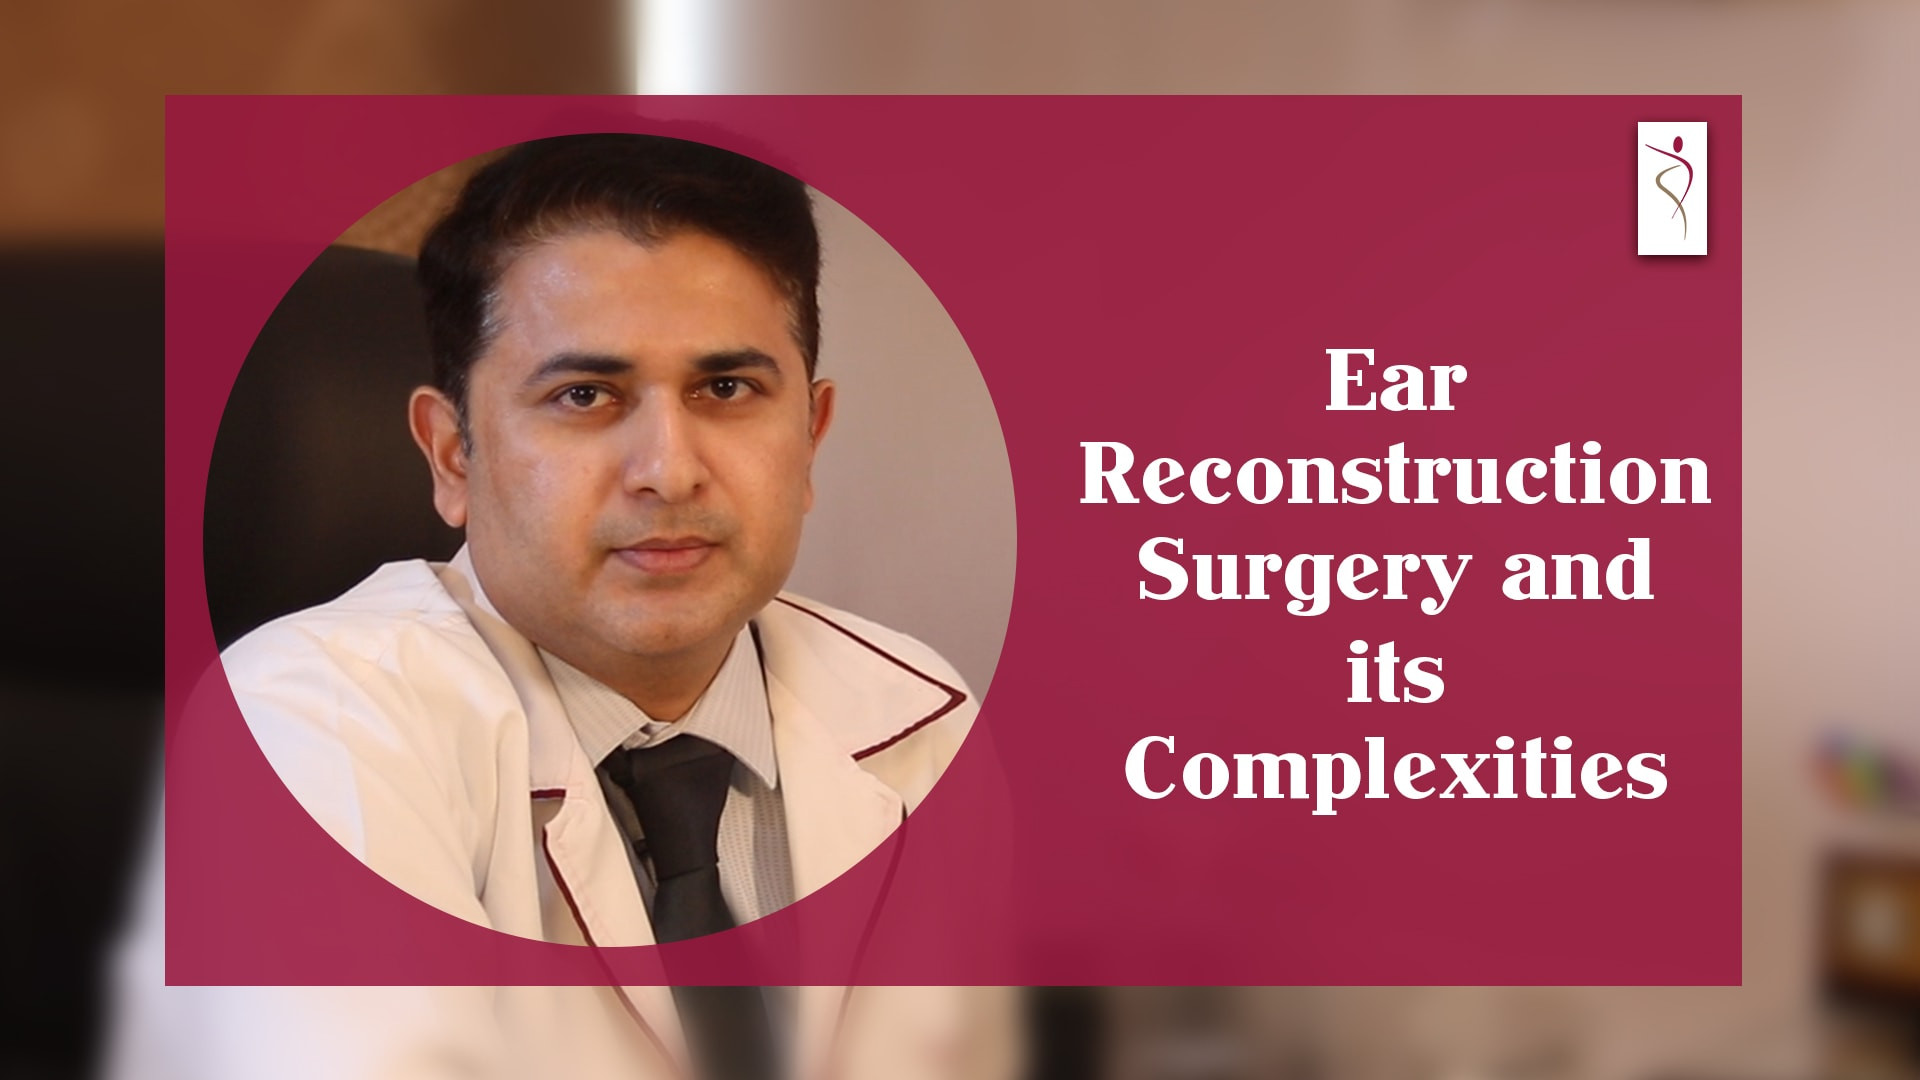 Ear Reconstruction Surgery and it's Complexities | Dr. Parag Telang